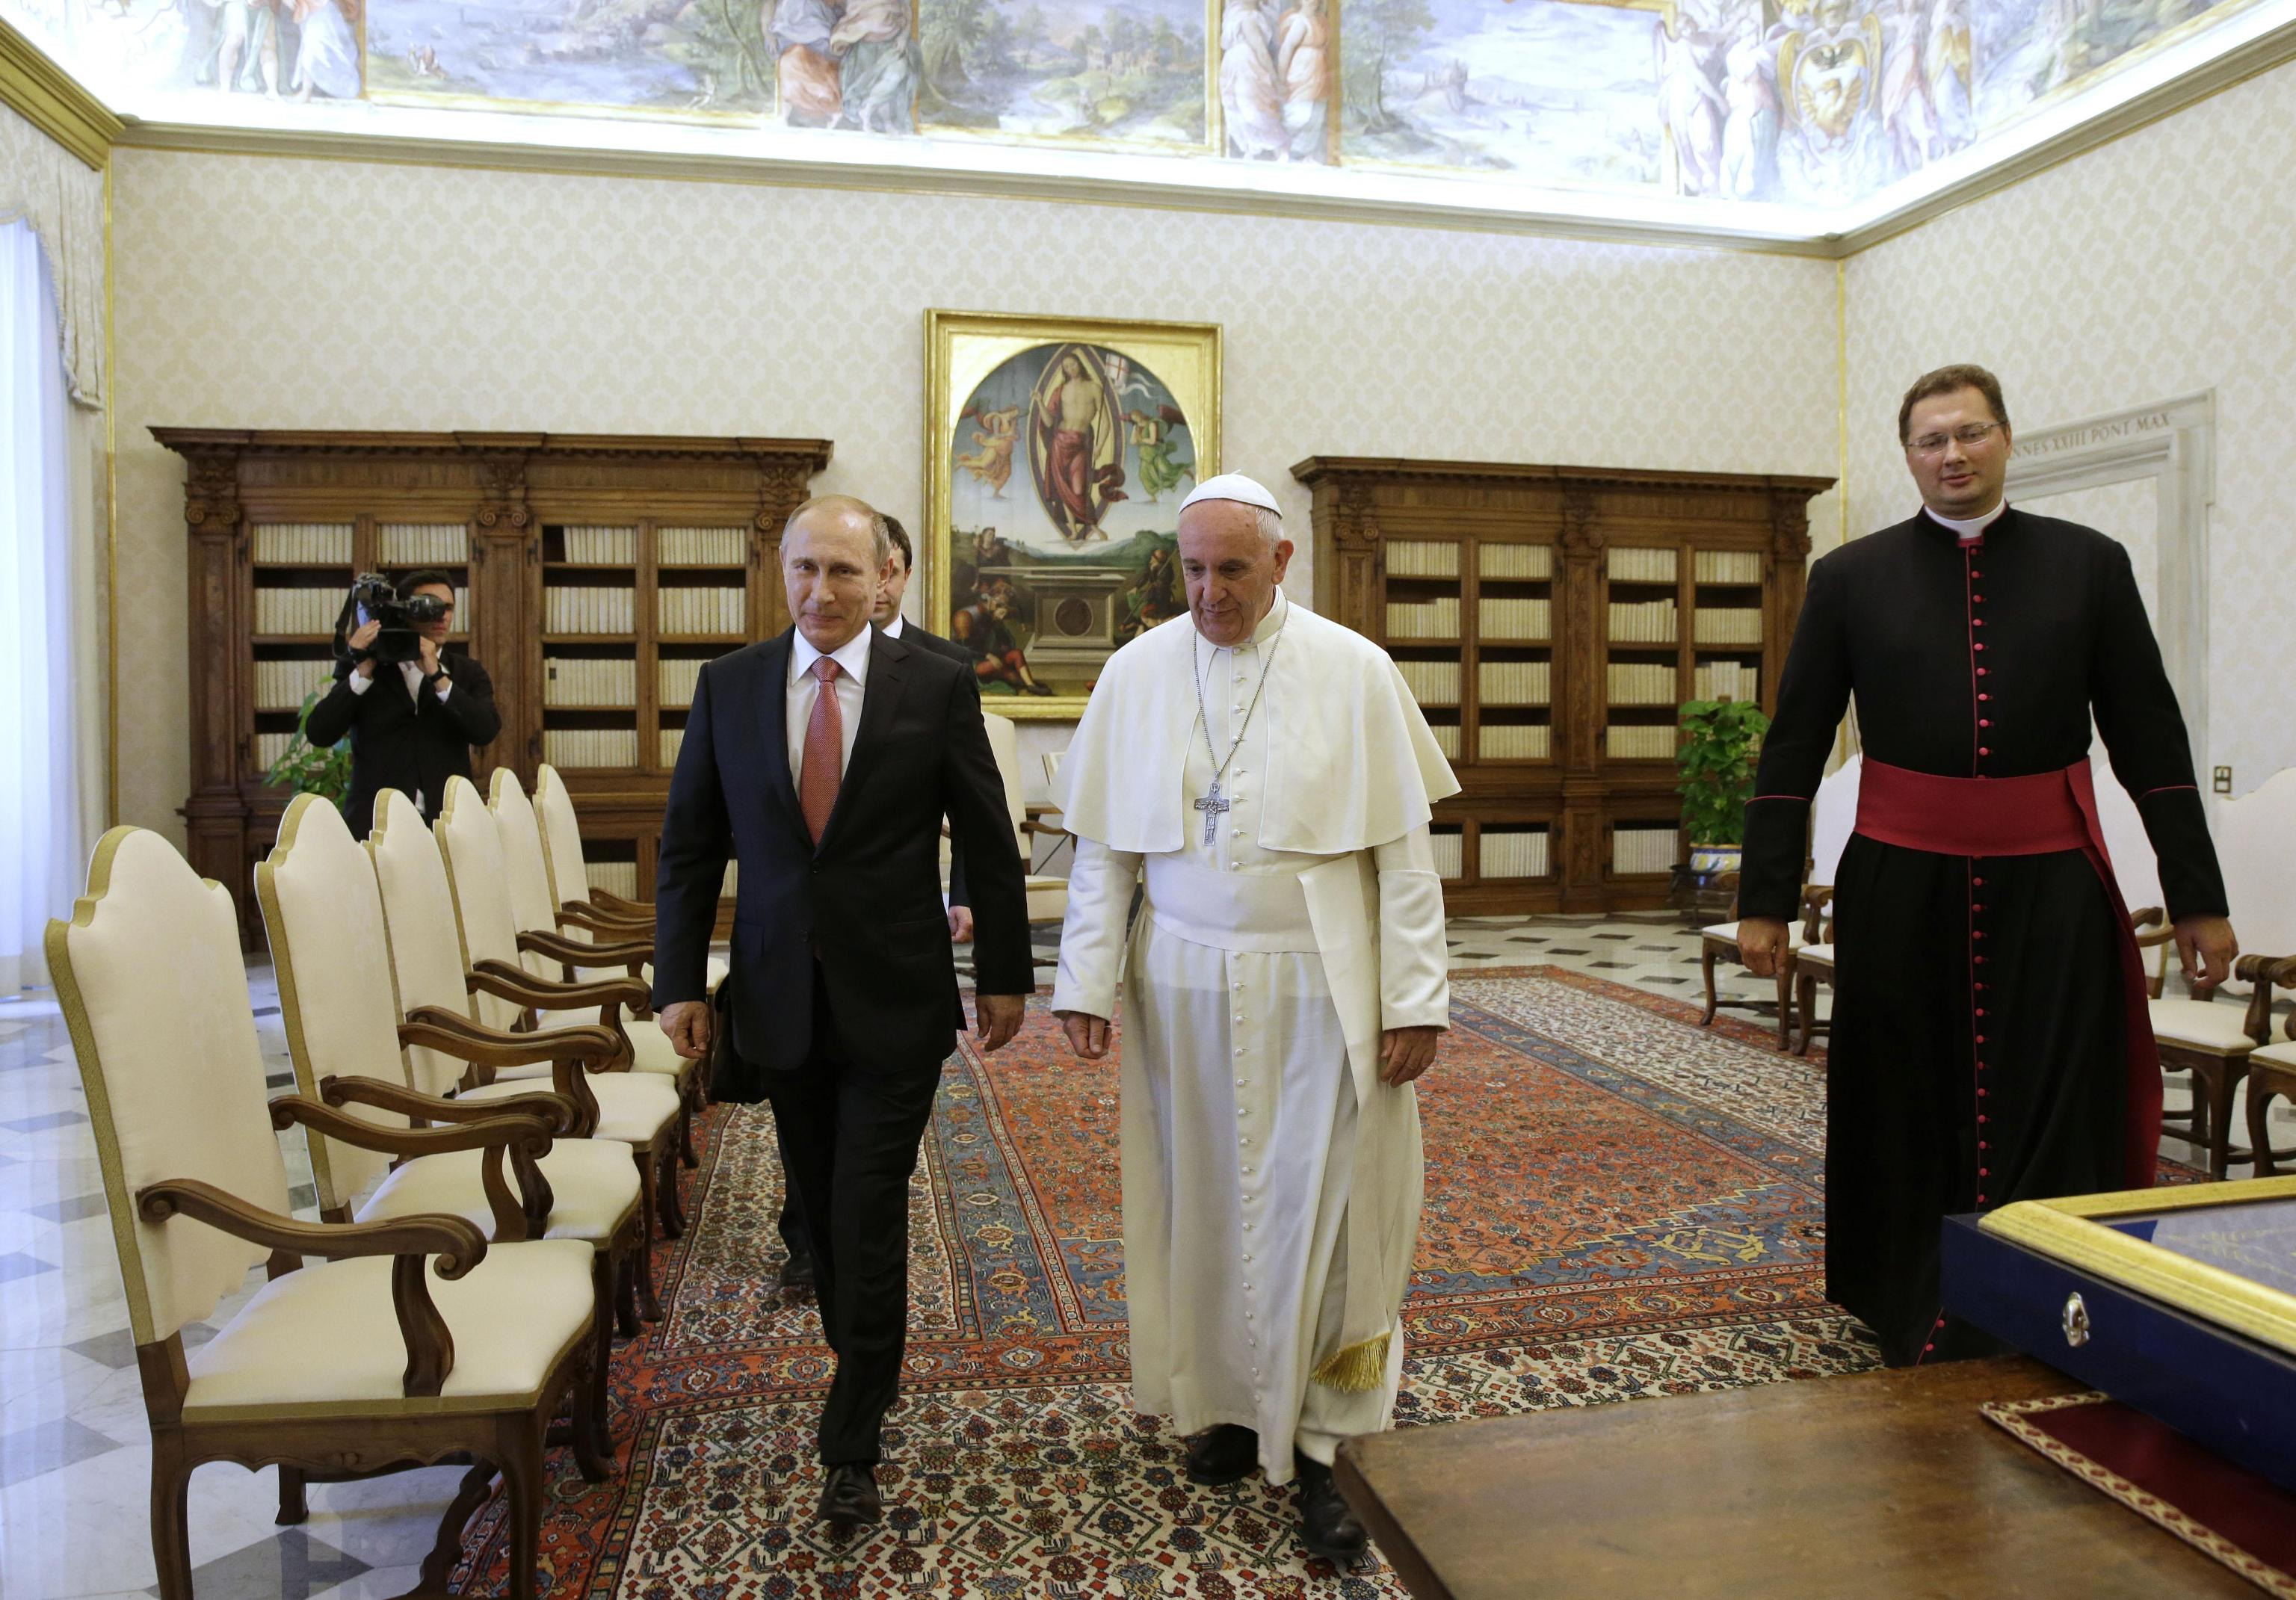 Pope Francis receives the Russian President Vladimir Putin in private audience at the Vatican